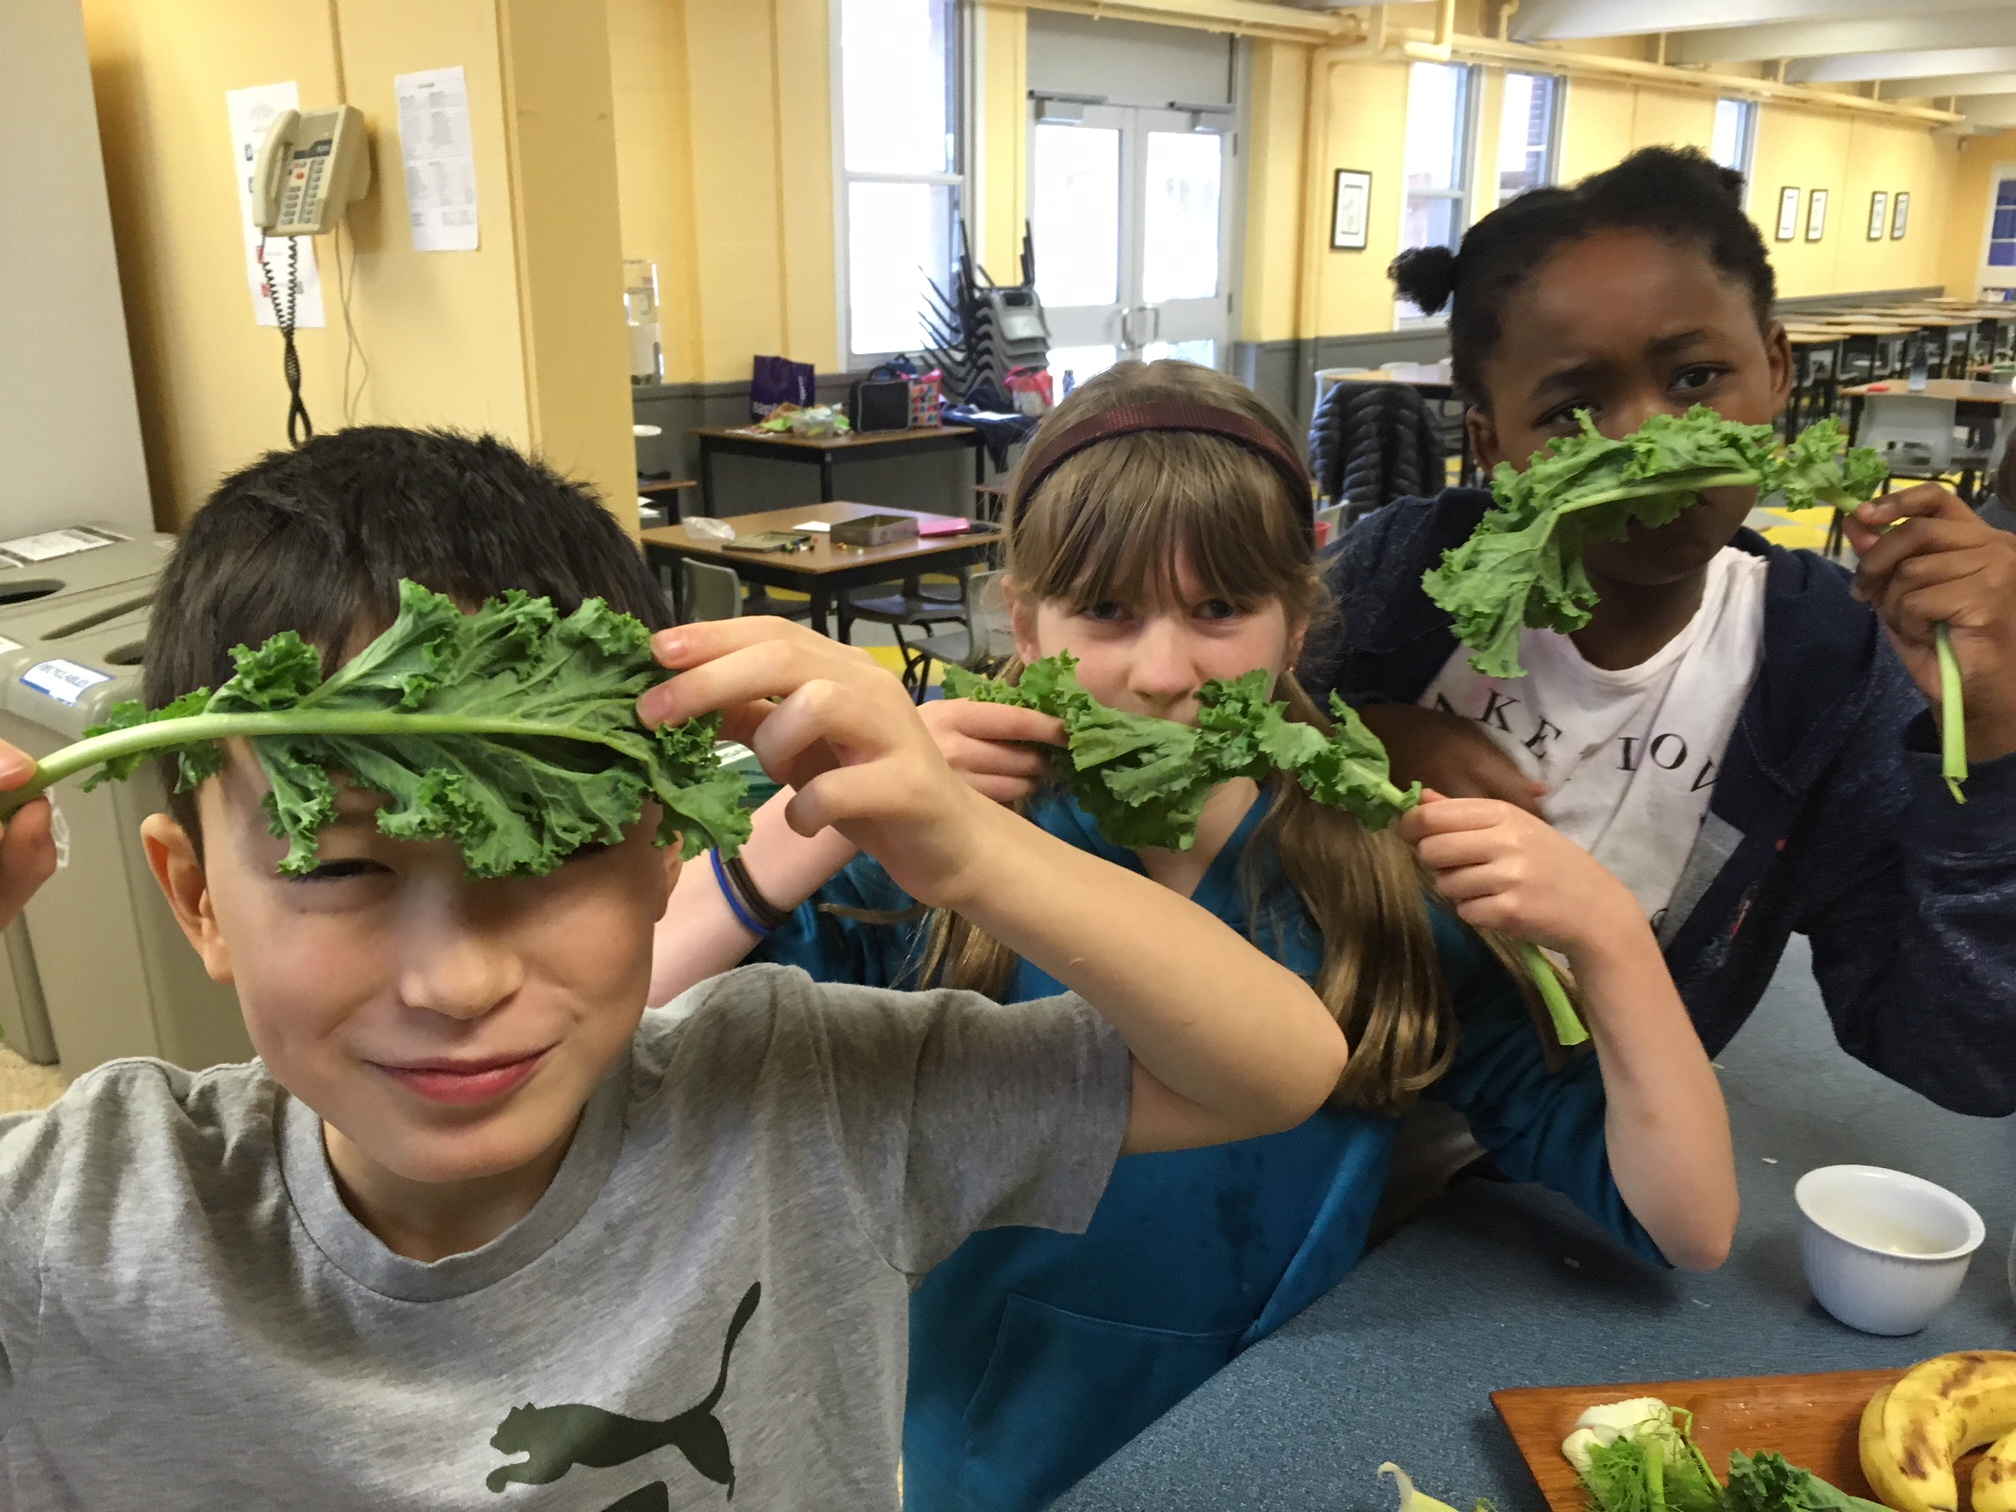 moustaches and a unibrow, made with kale